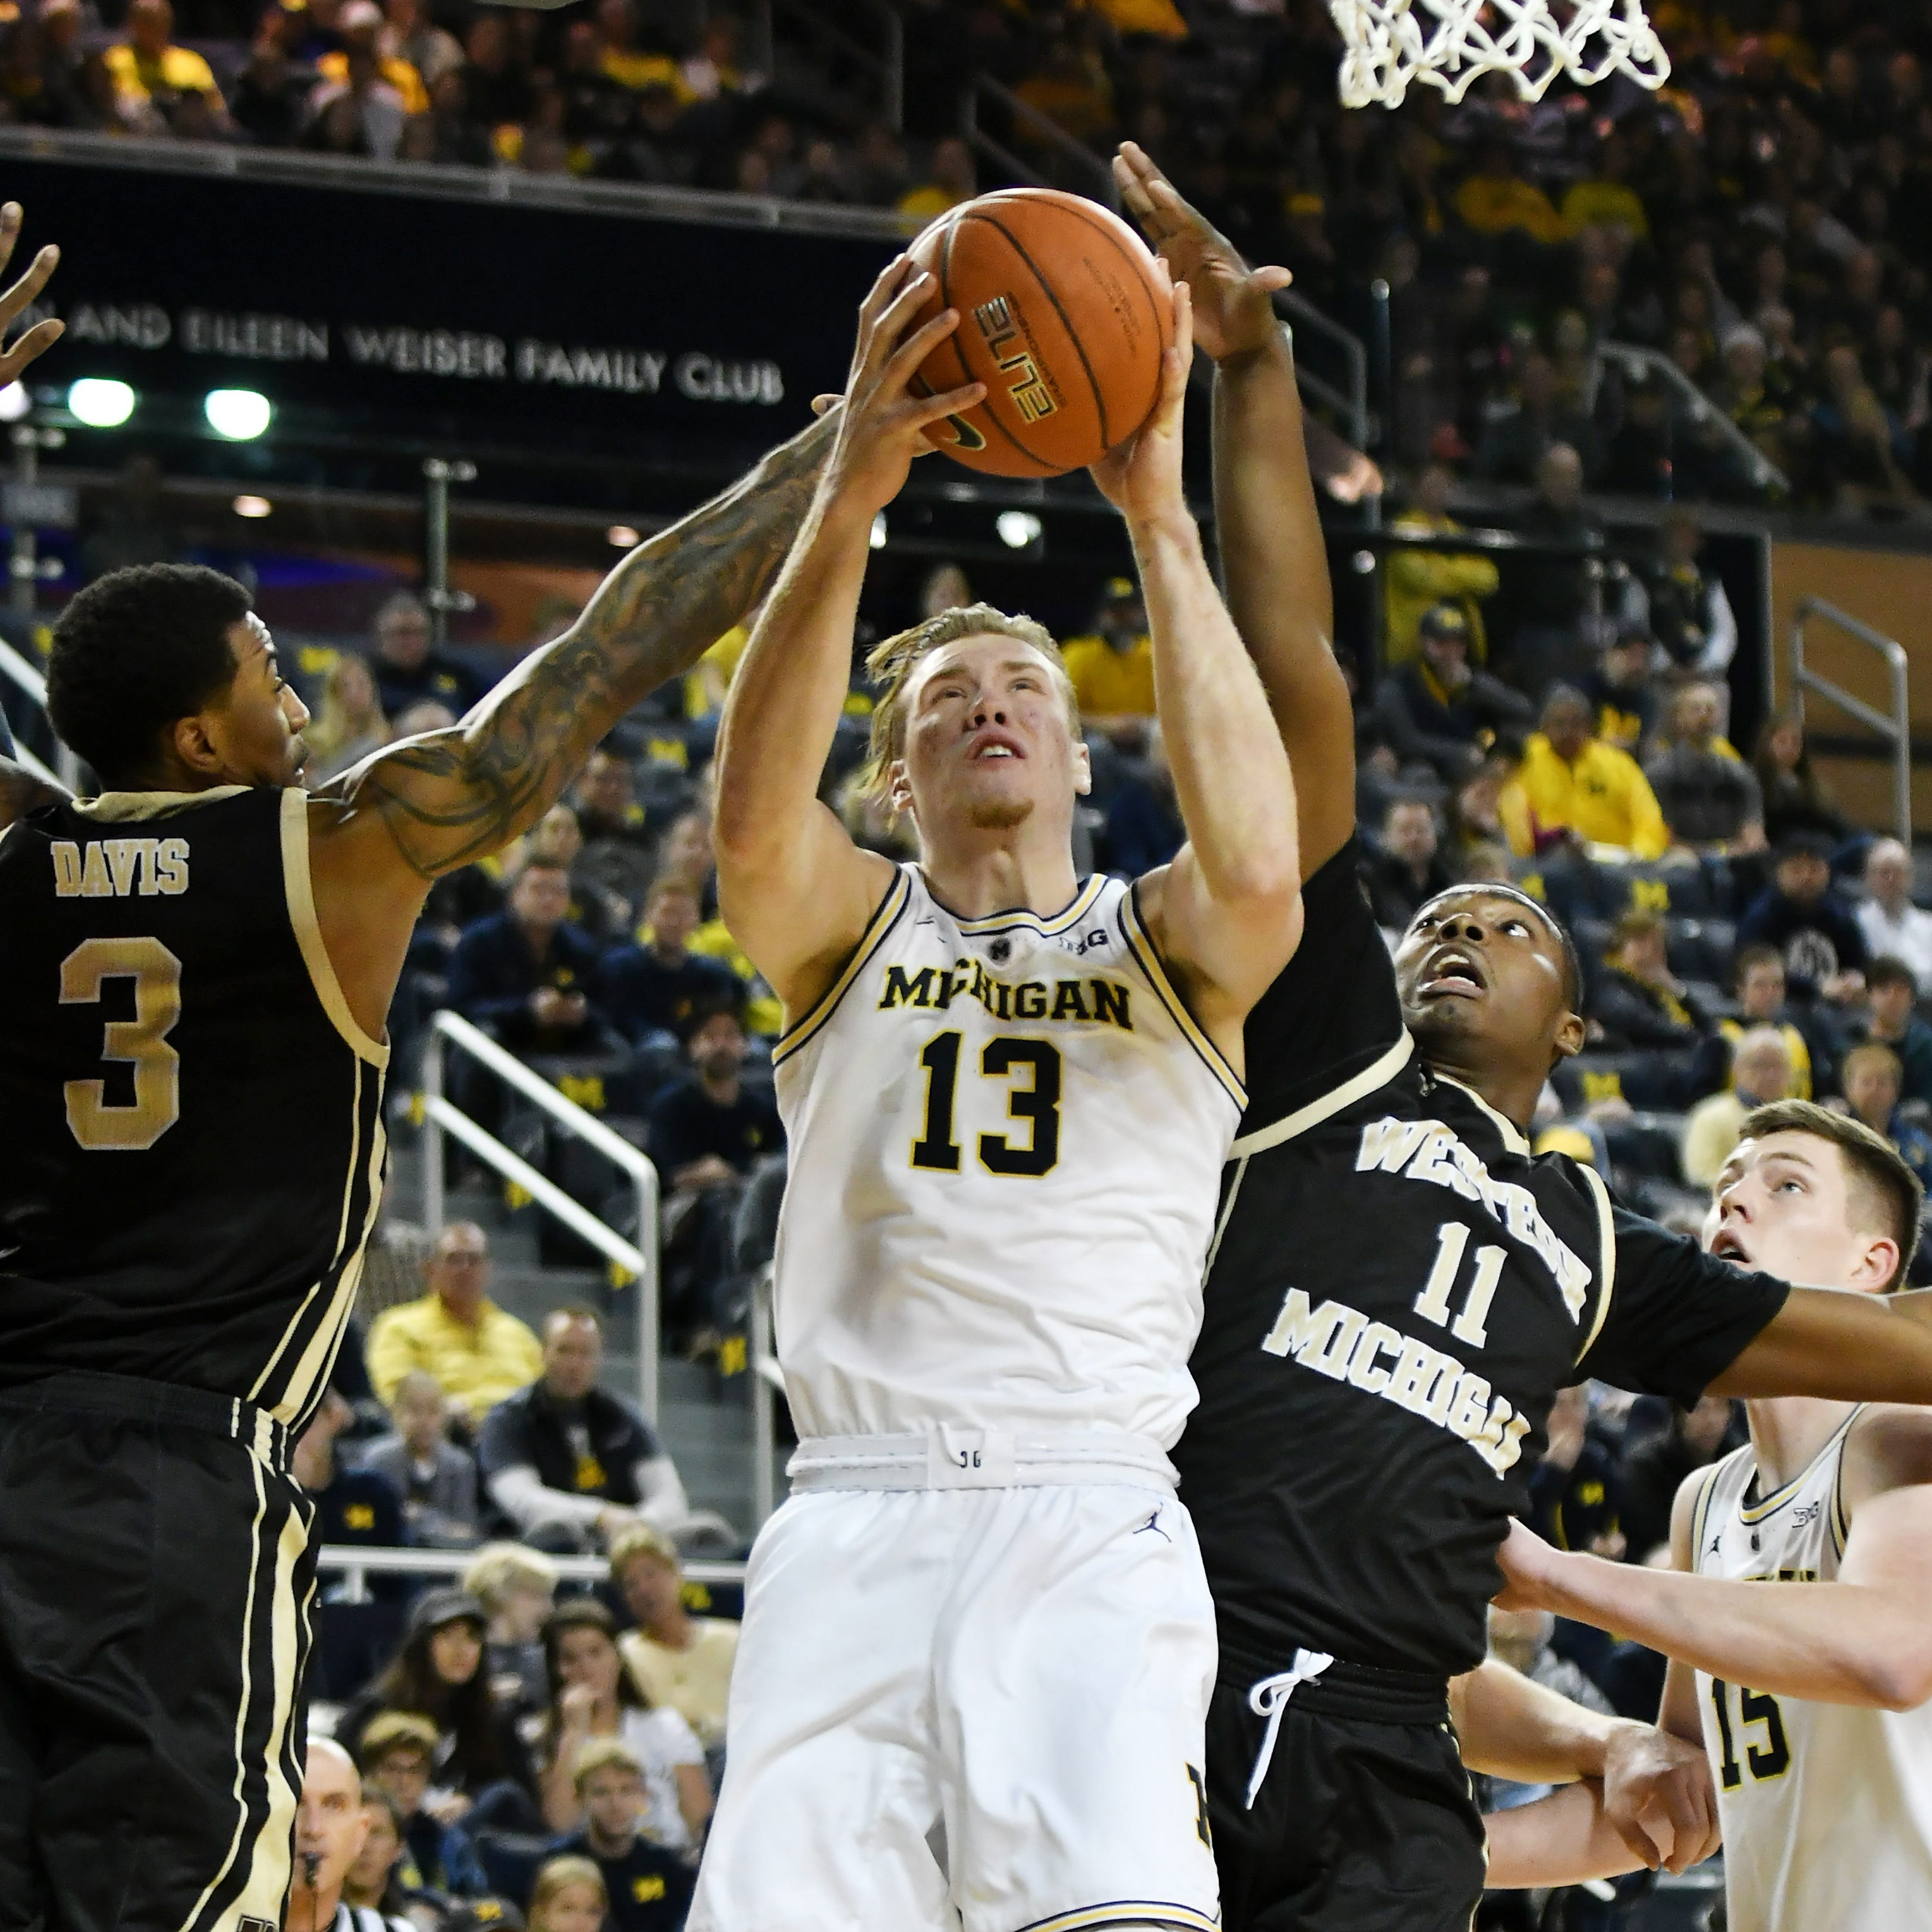 Davis proves to be right call for Beilein in Michigan victory